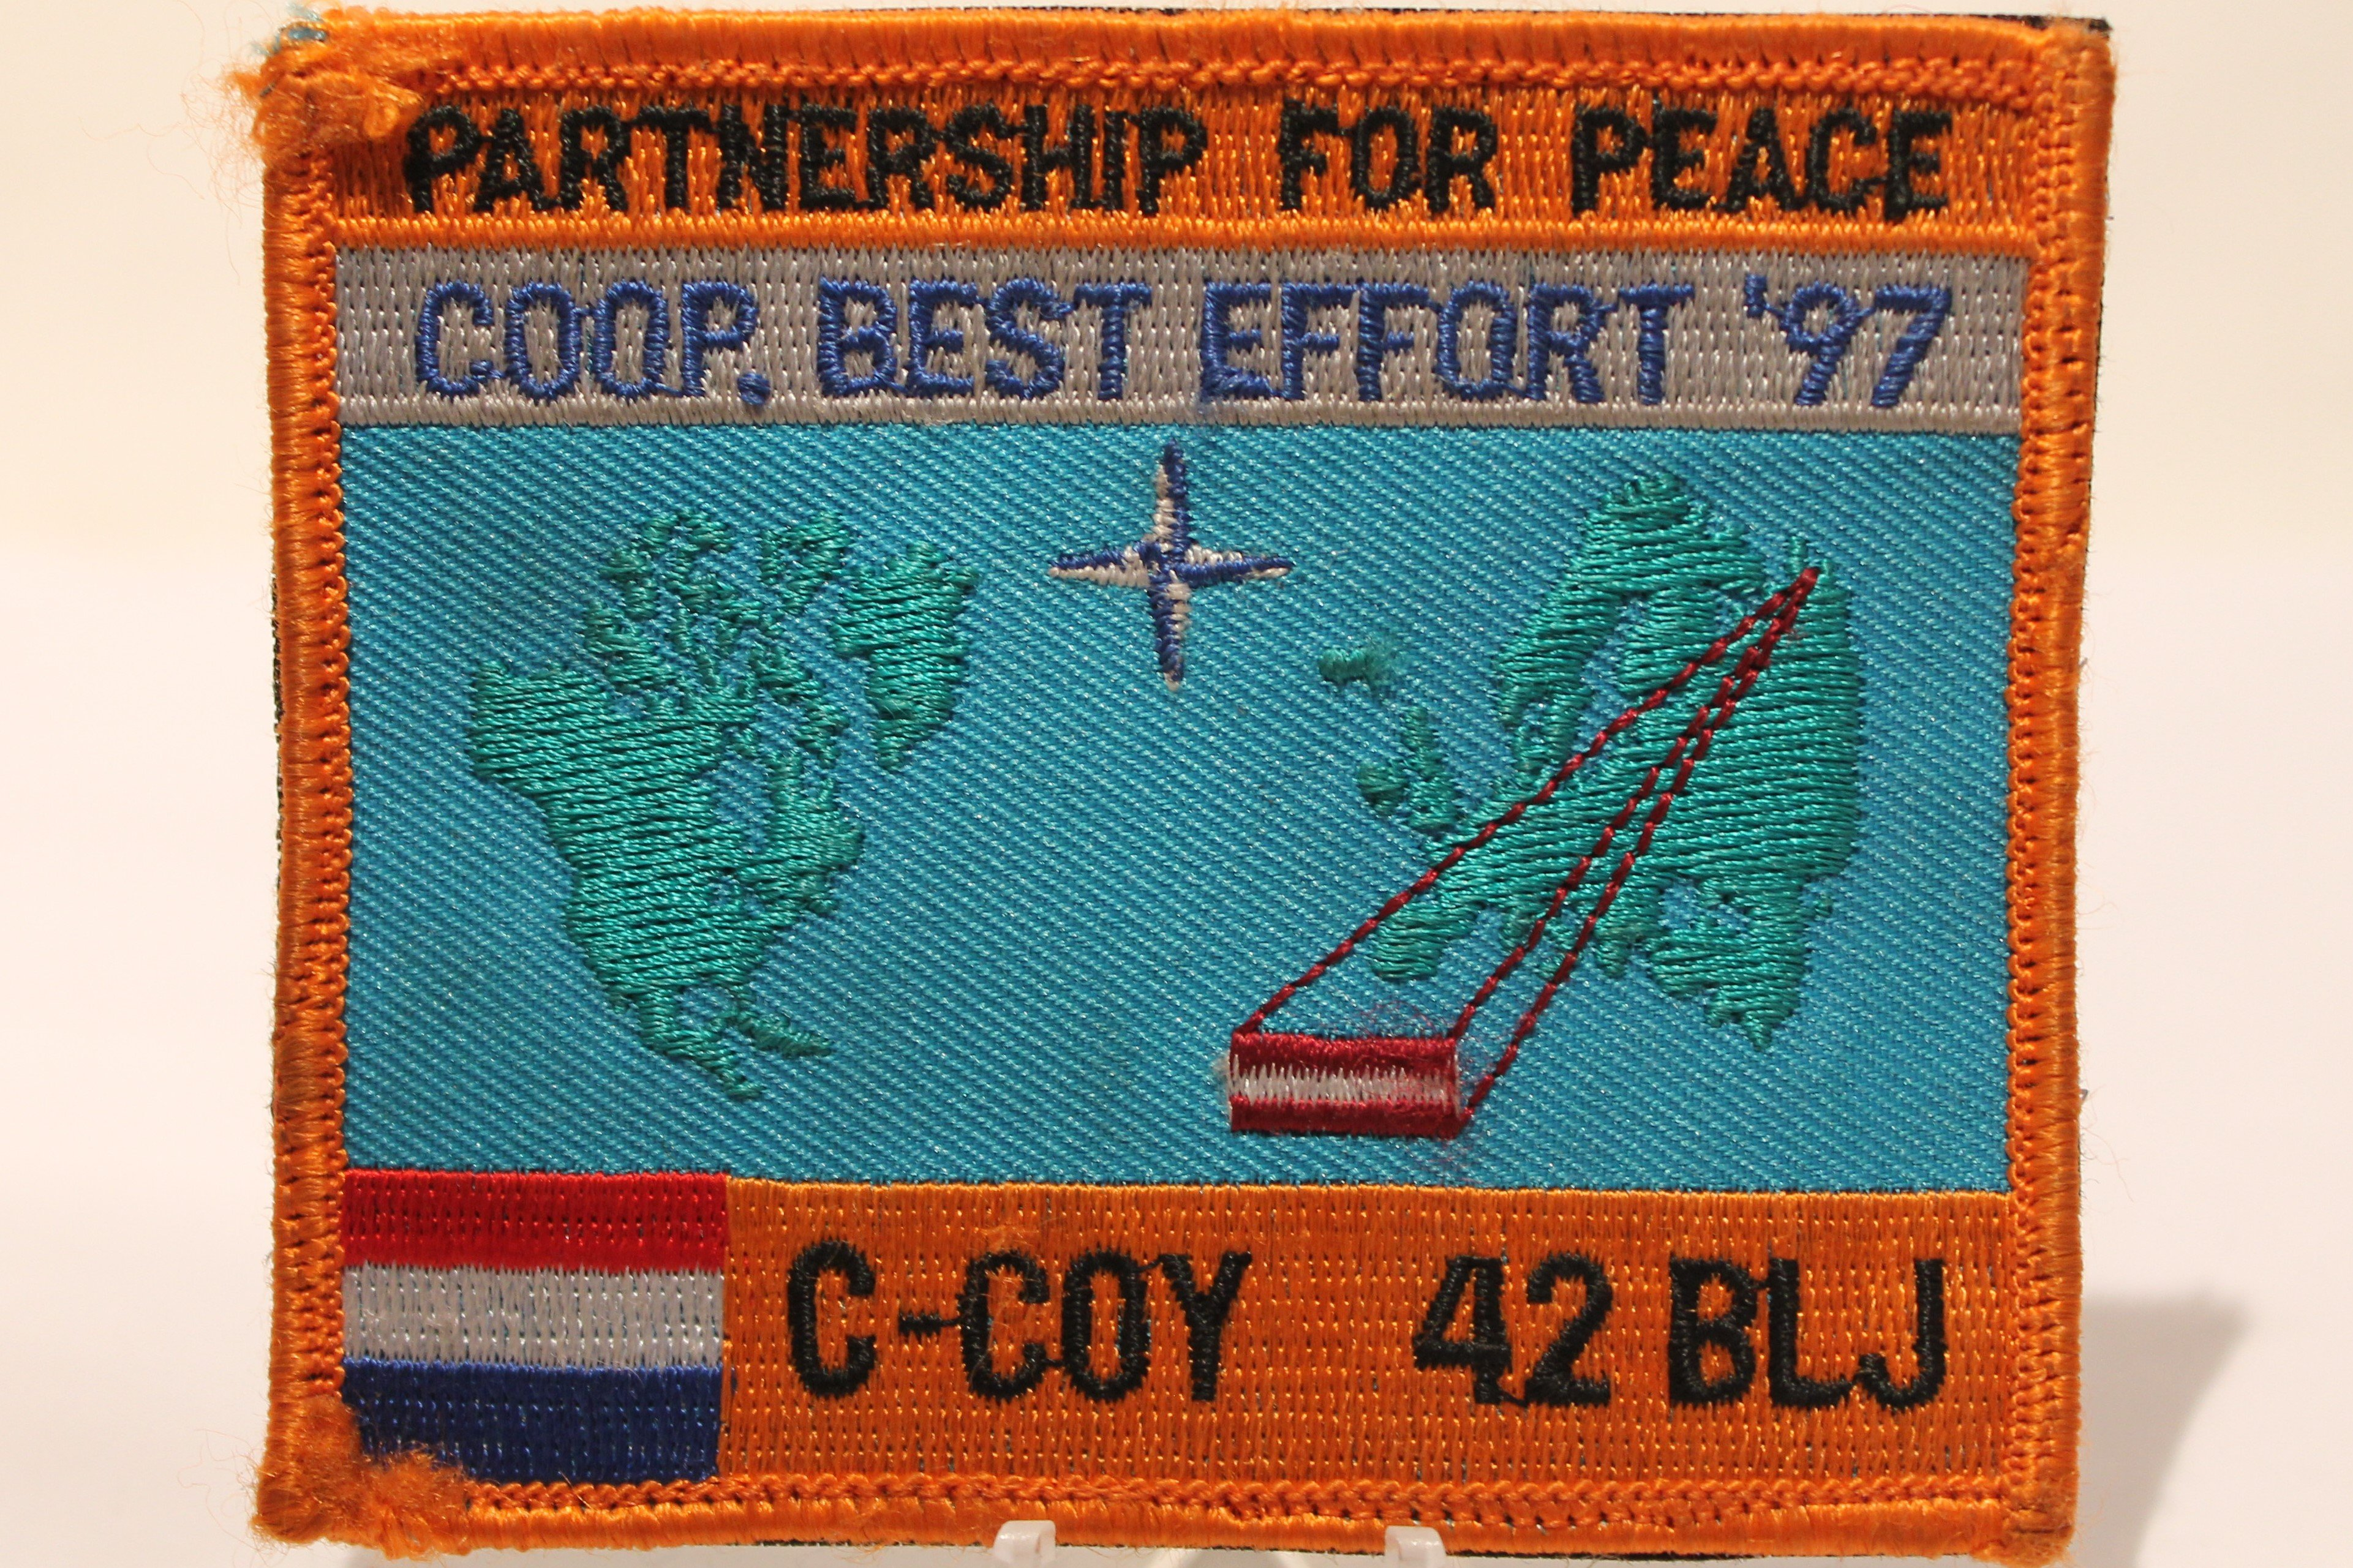 Partnership For Peace (PFP)